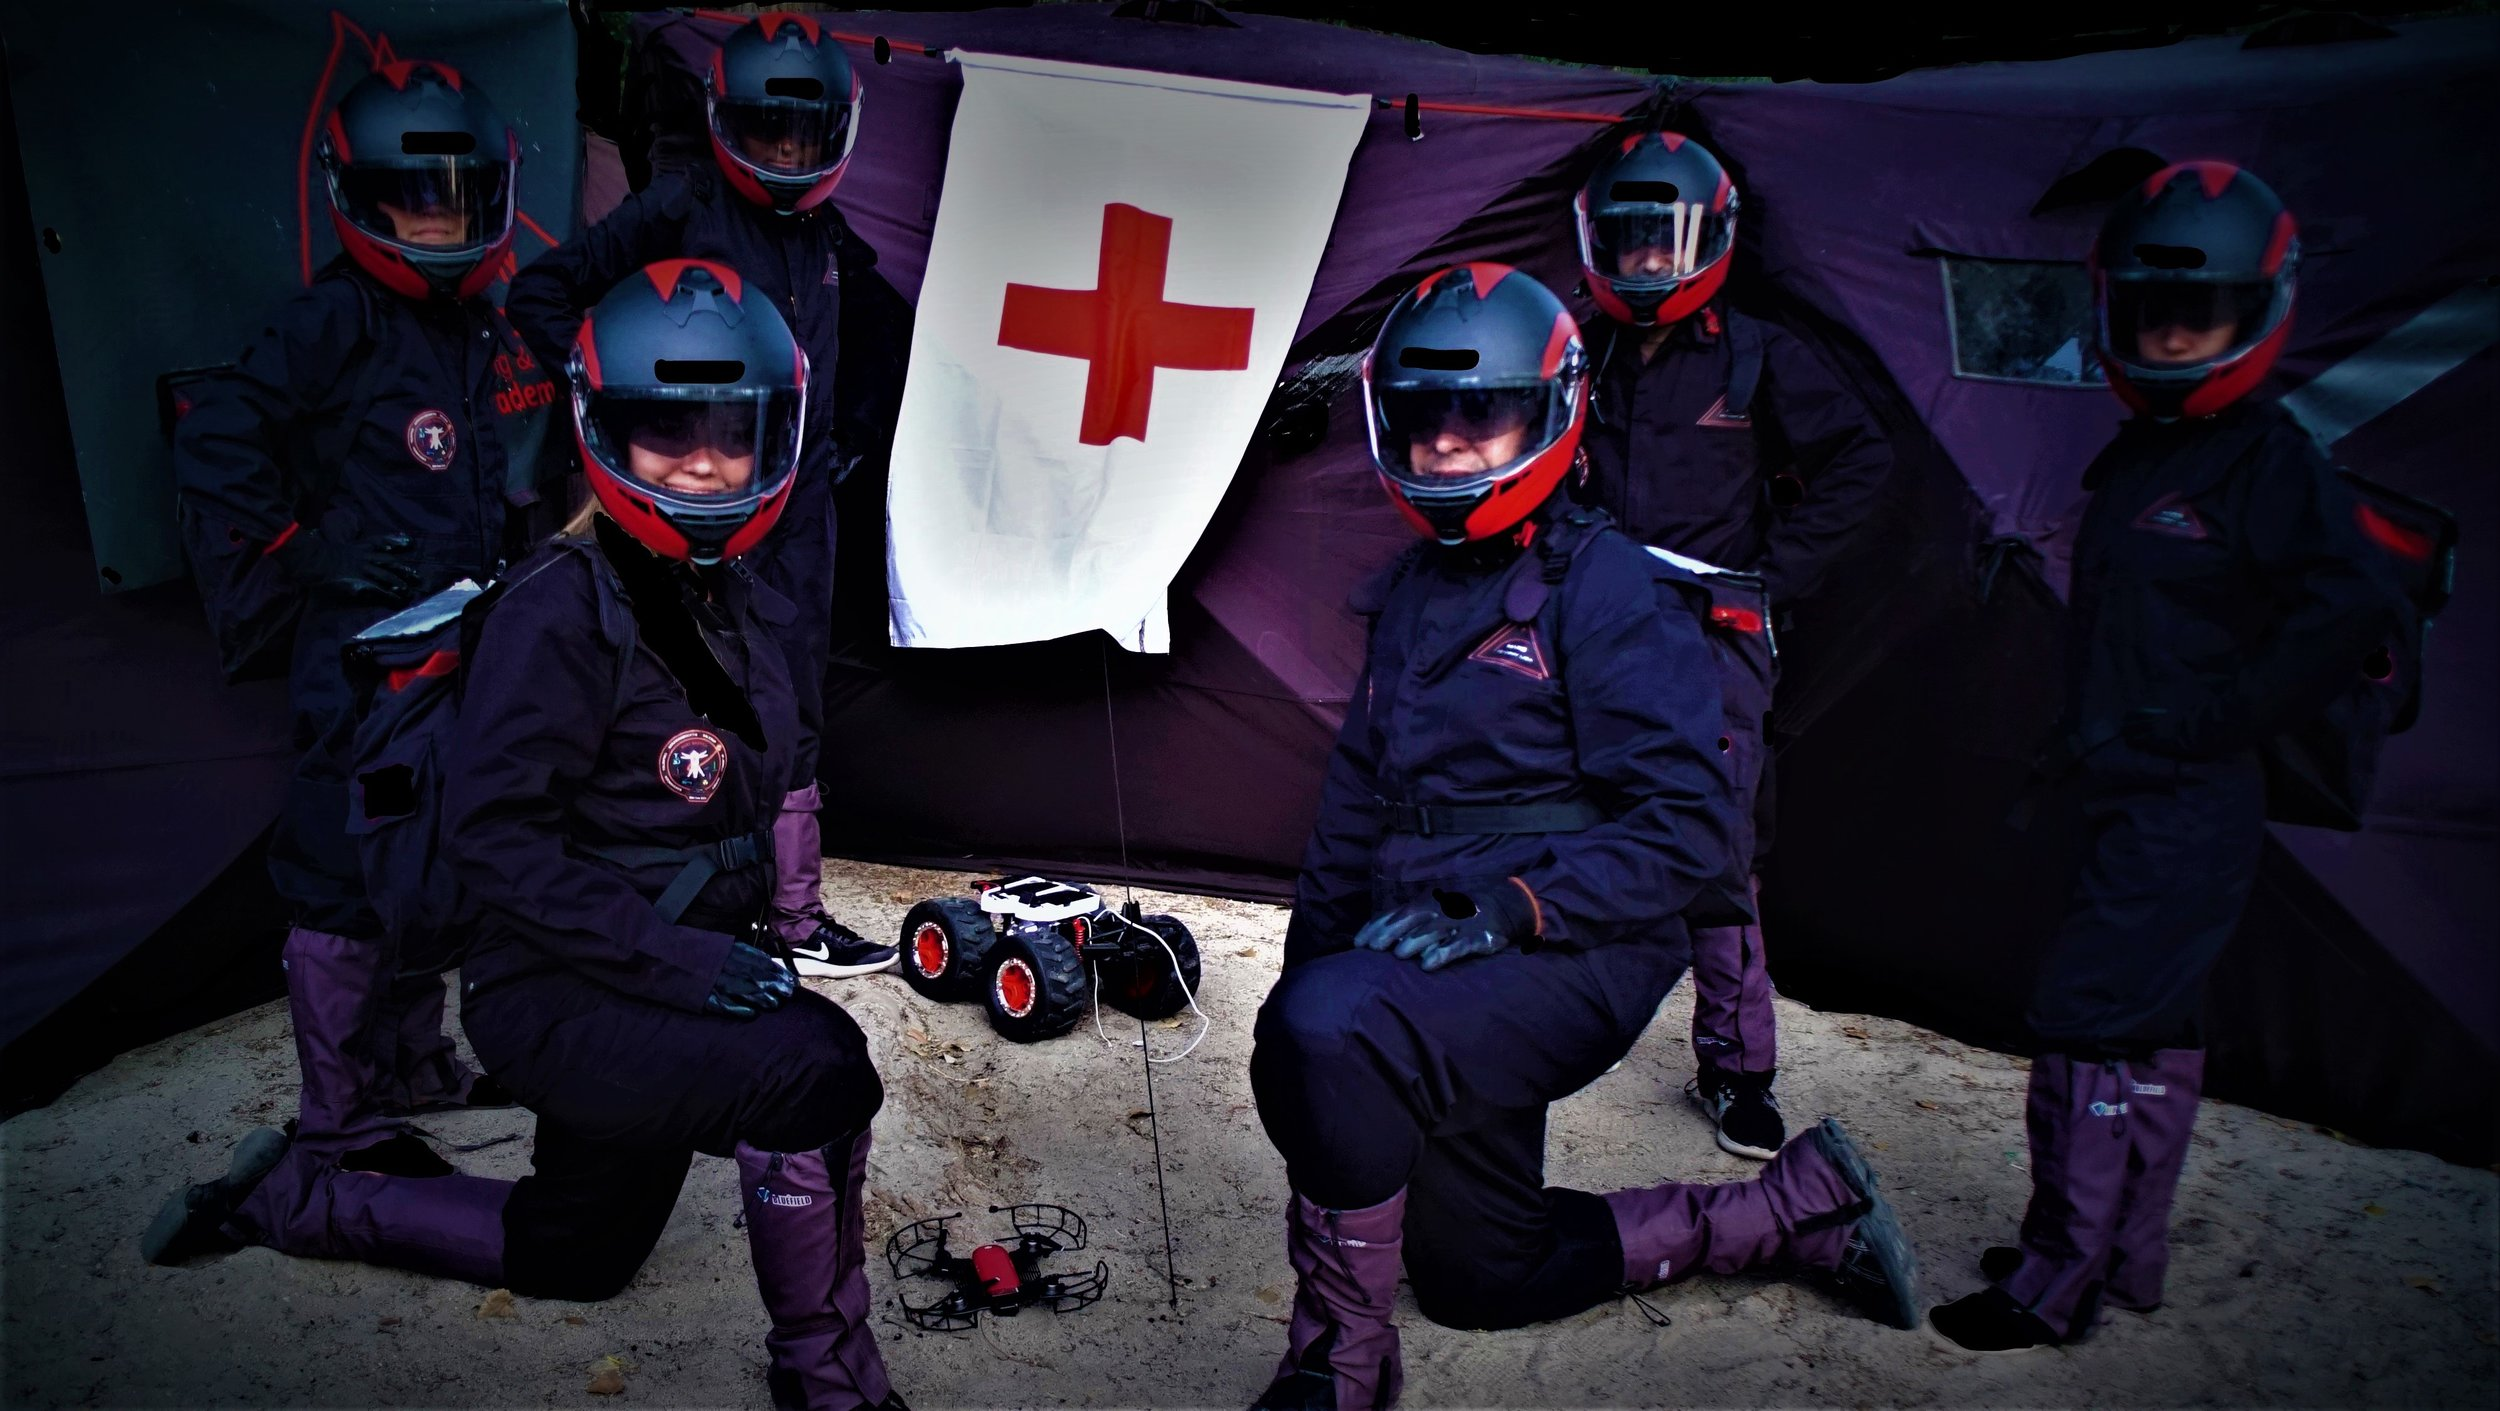 Mars Medics Analog Astronauts outside the Mars Space Clinic during a Medical Extra-Vehicular Activity, MEVA.